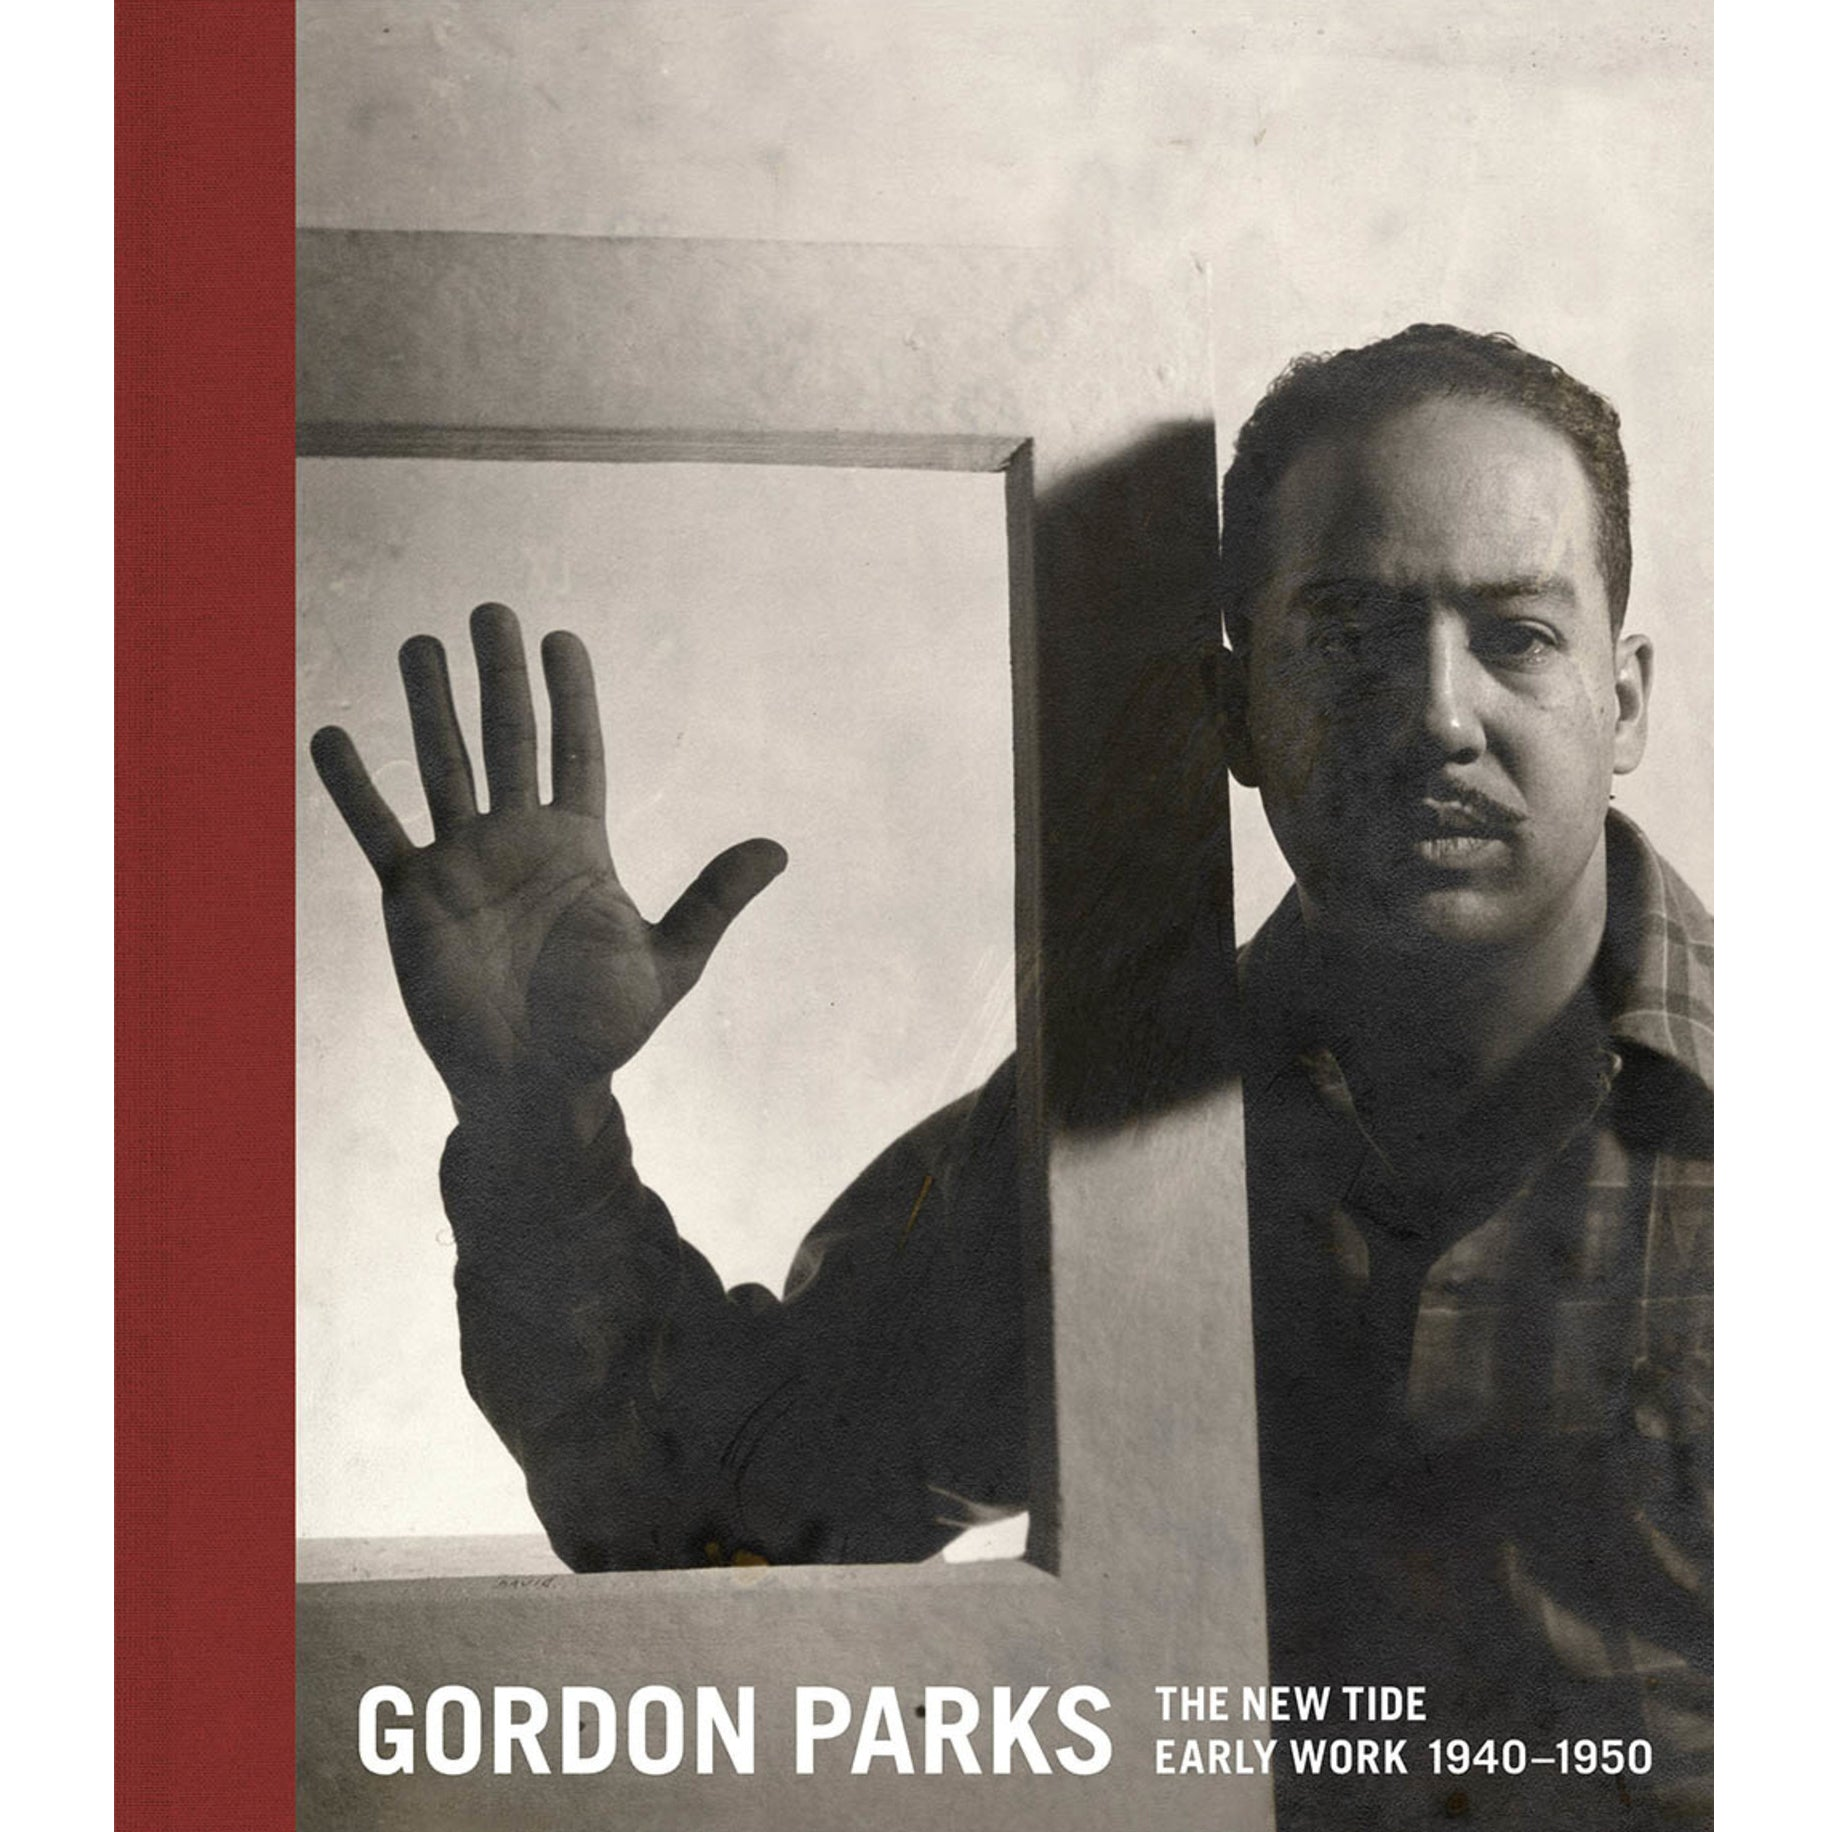 Gordon Parks: The New Tide Early Work 1940-1950